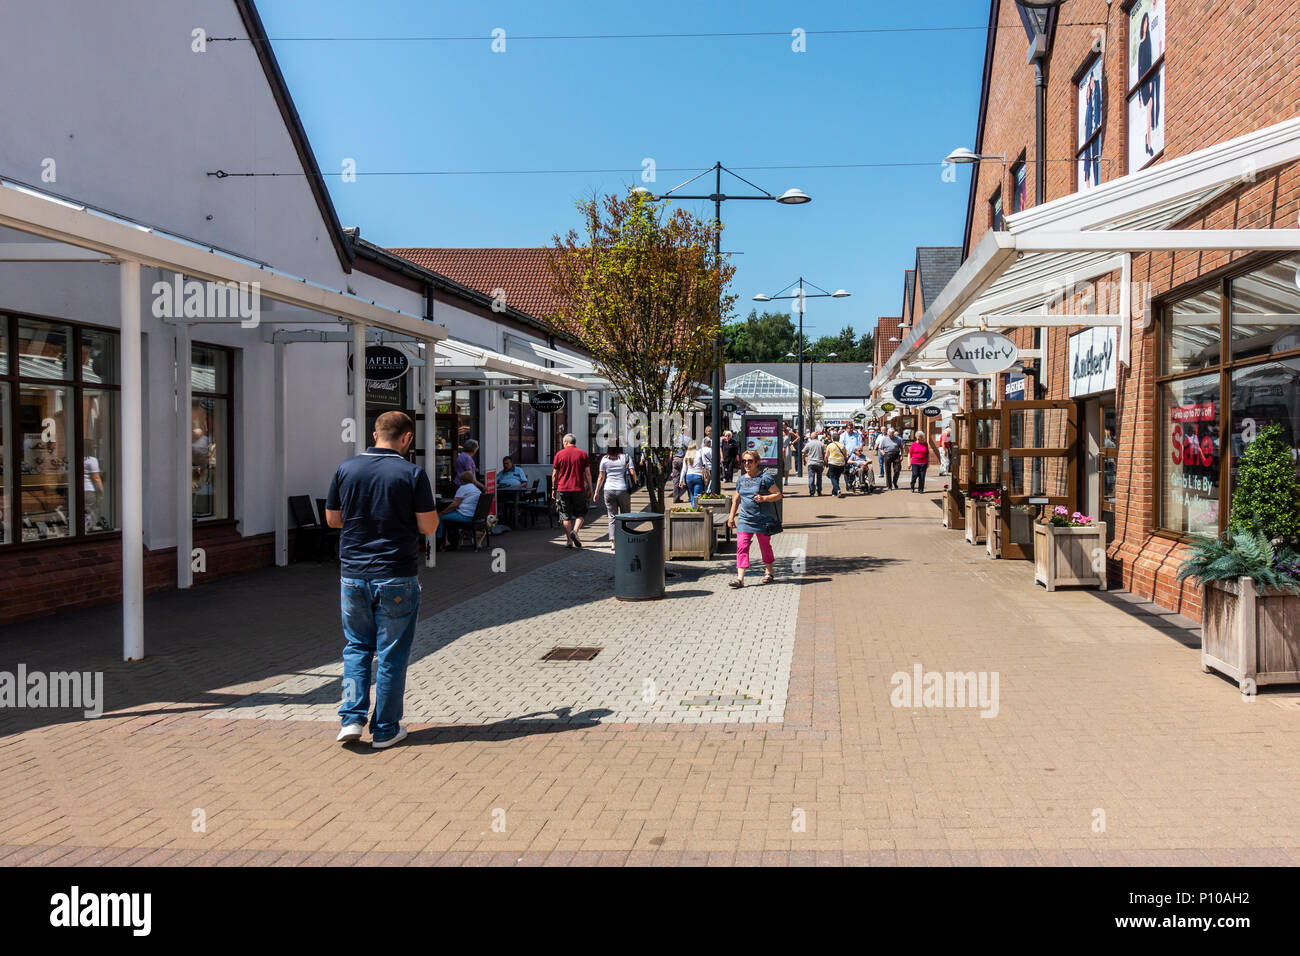 Shoppers on a sunny day at Gretna Gateway Outlet Village, a 'strip mall' in the very south of Scotland. - Stock Image